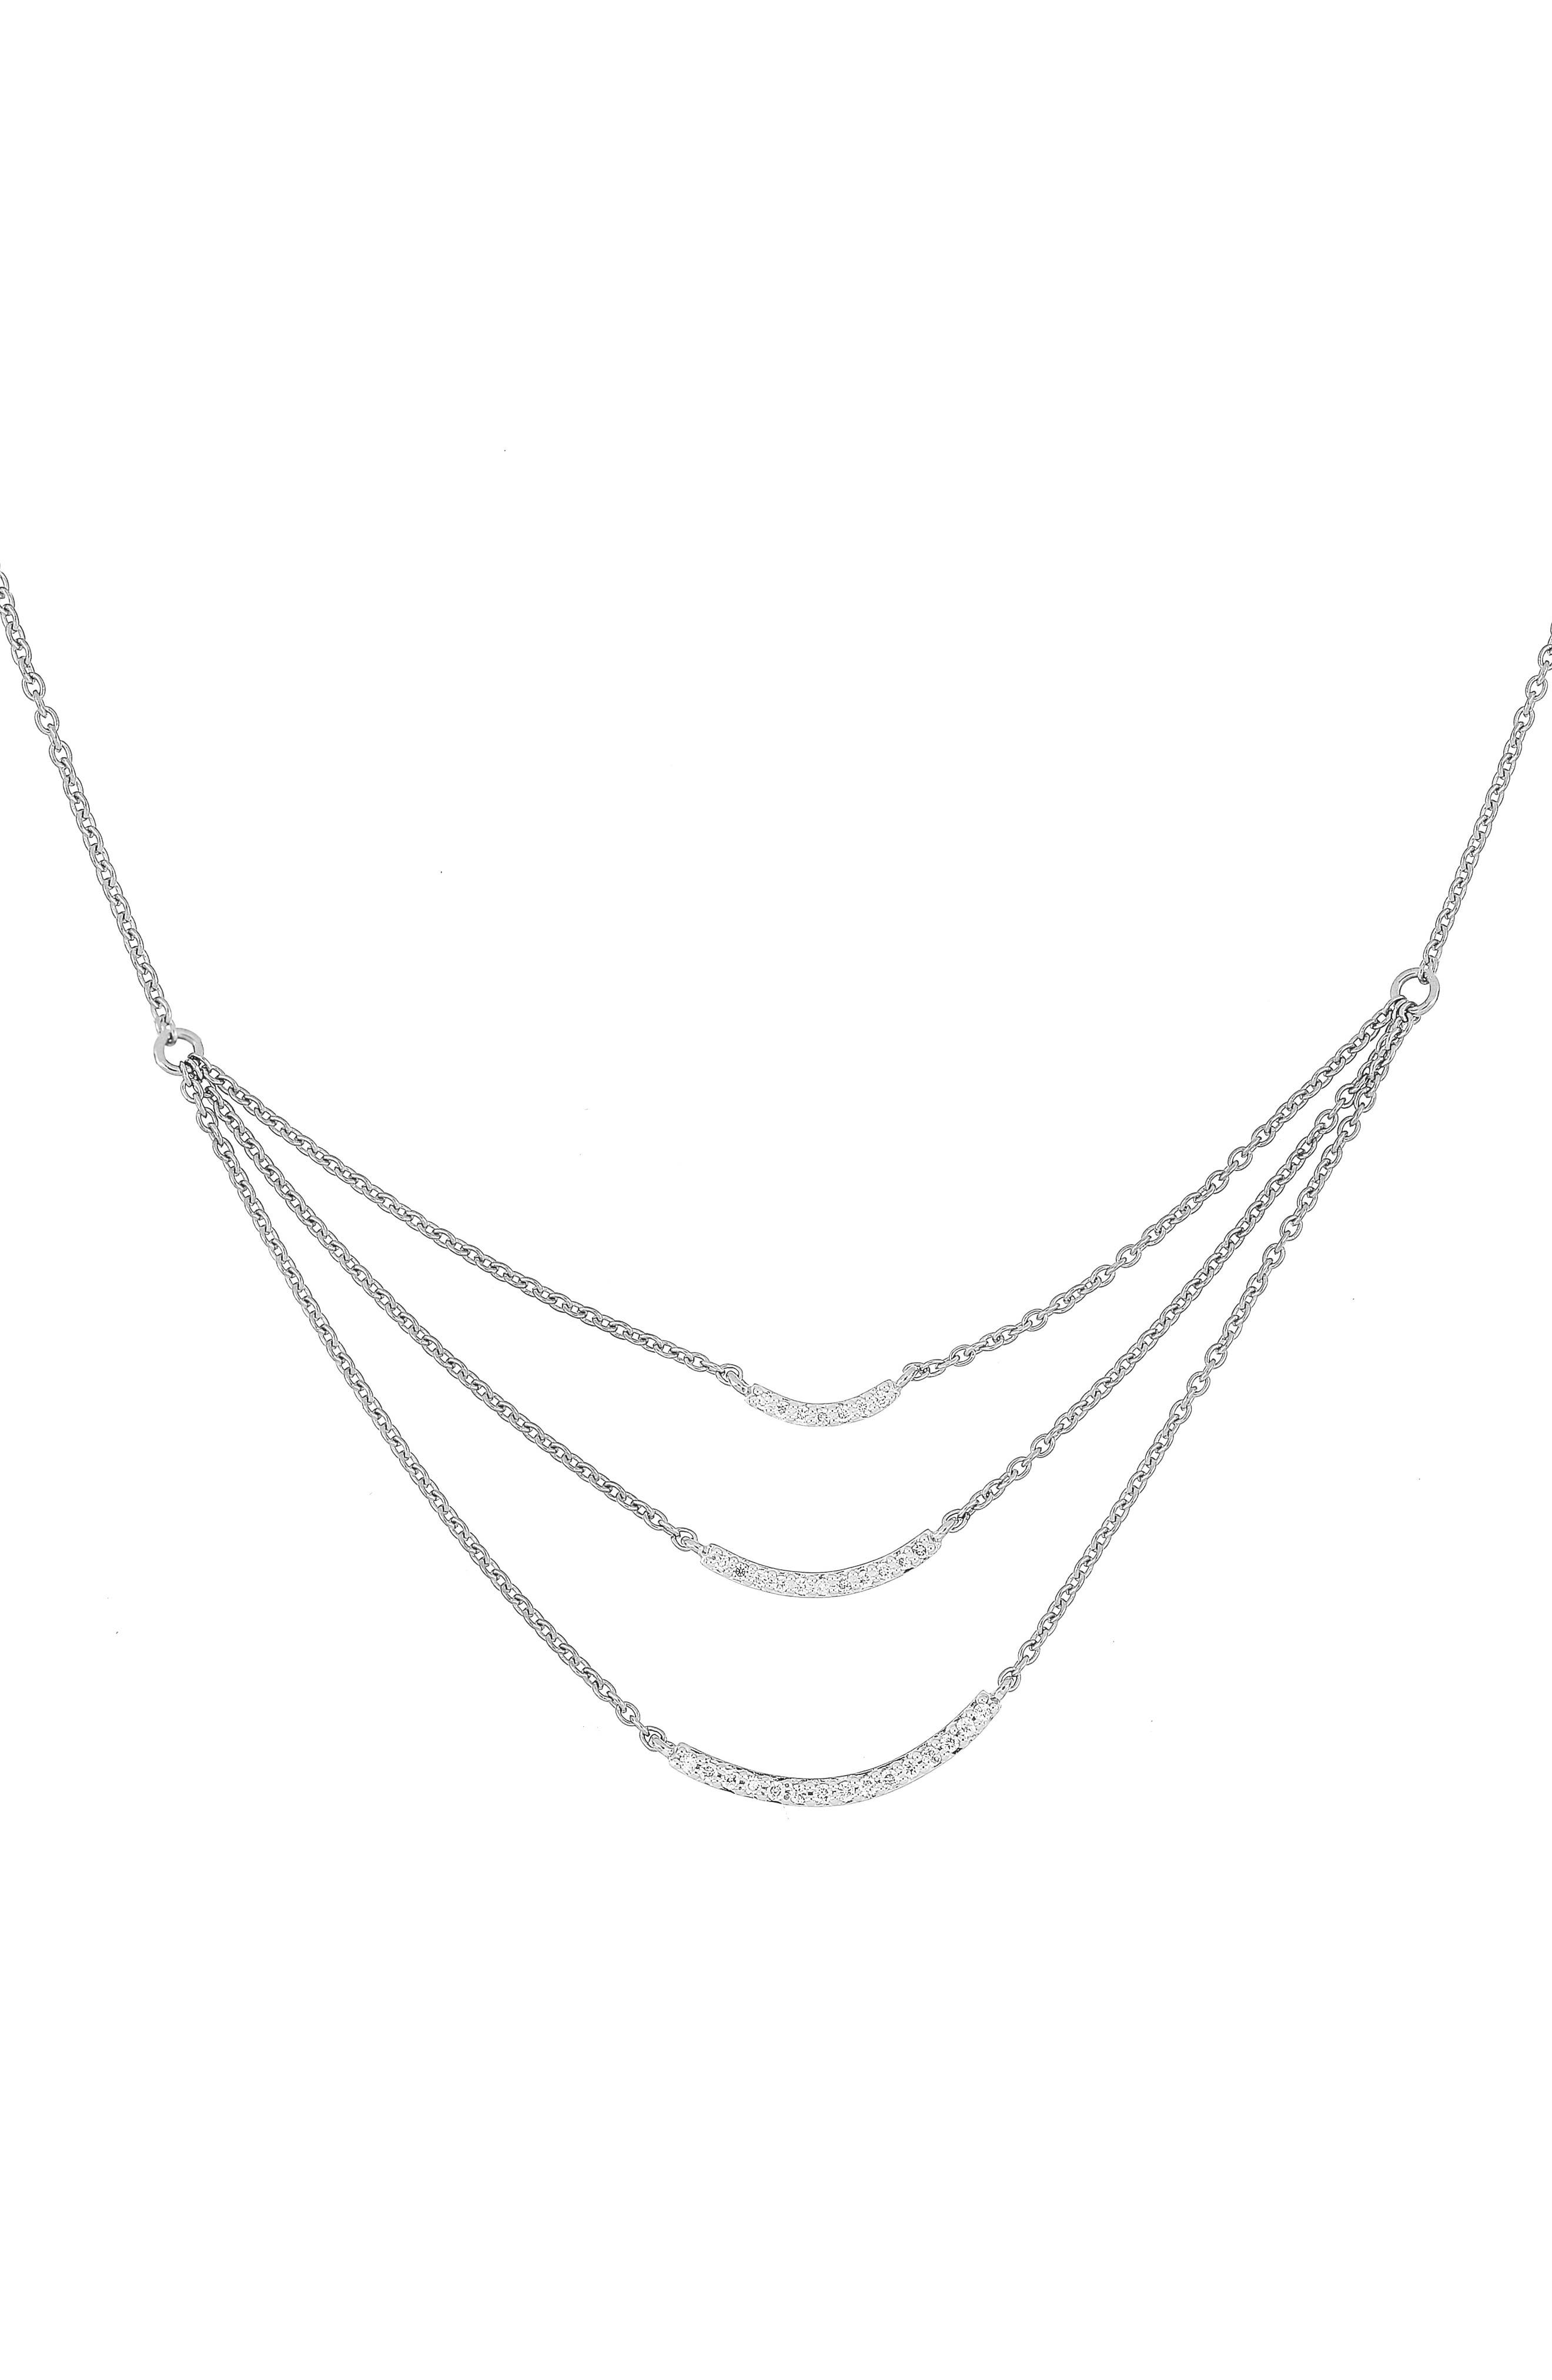 Diamond Layered Necklace,                         Main,                         color, White Gold